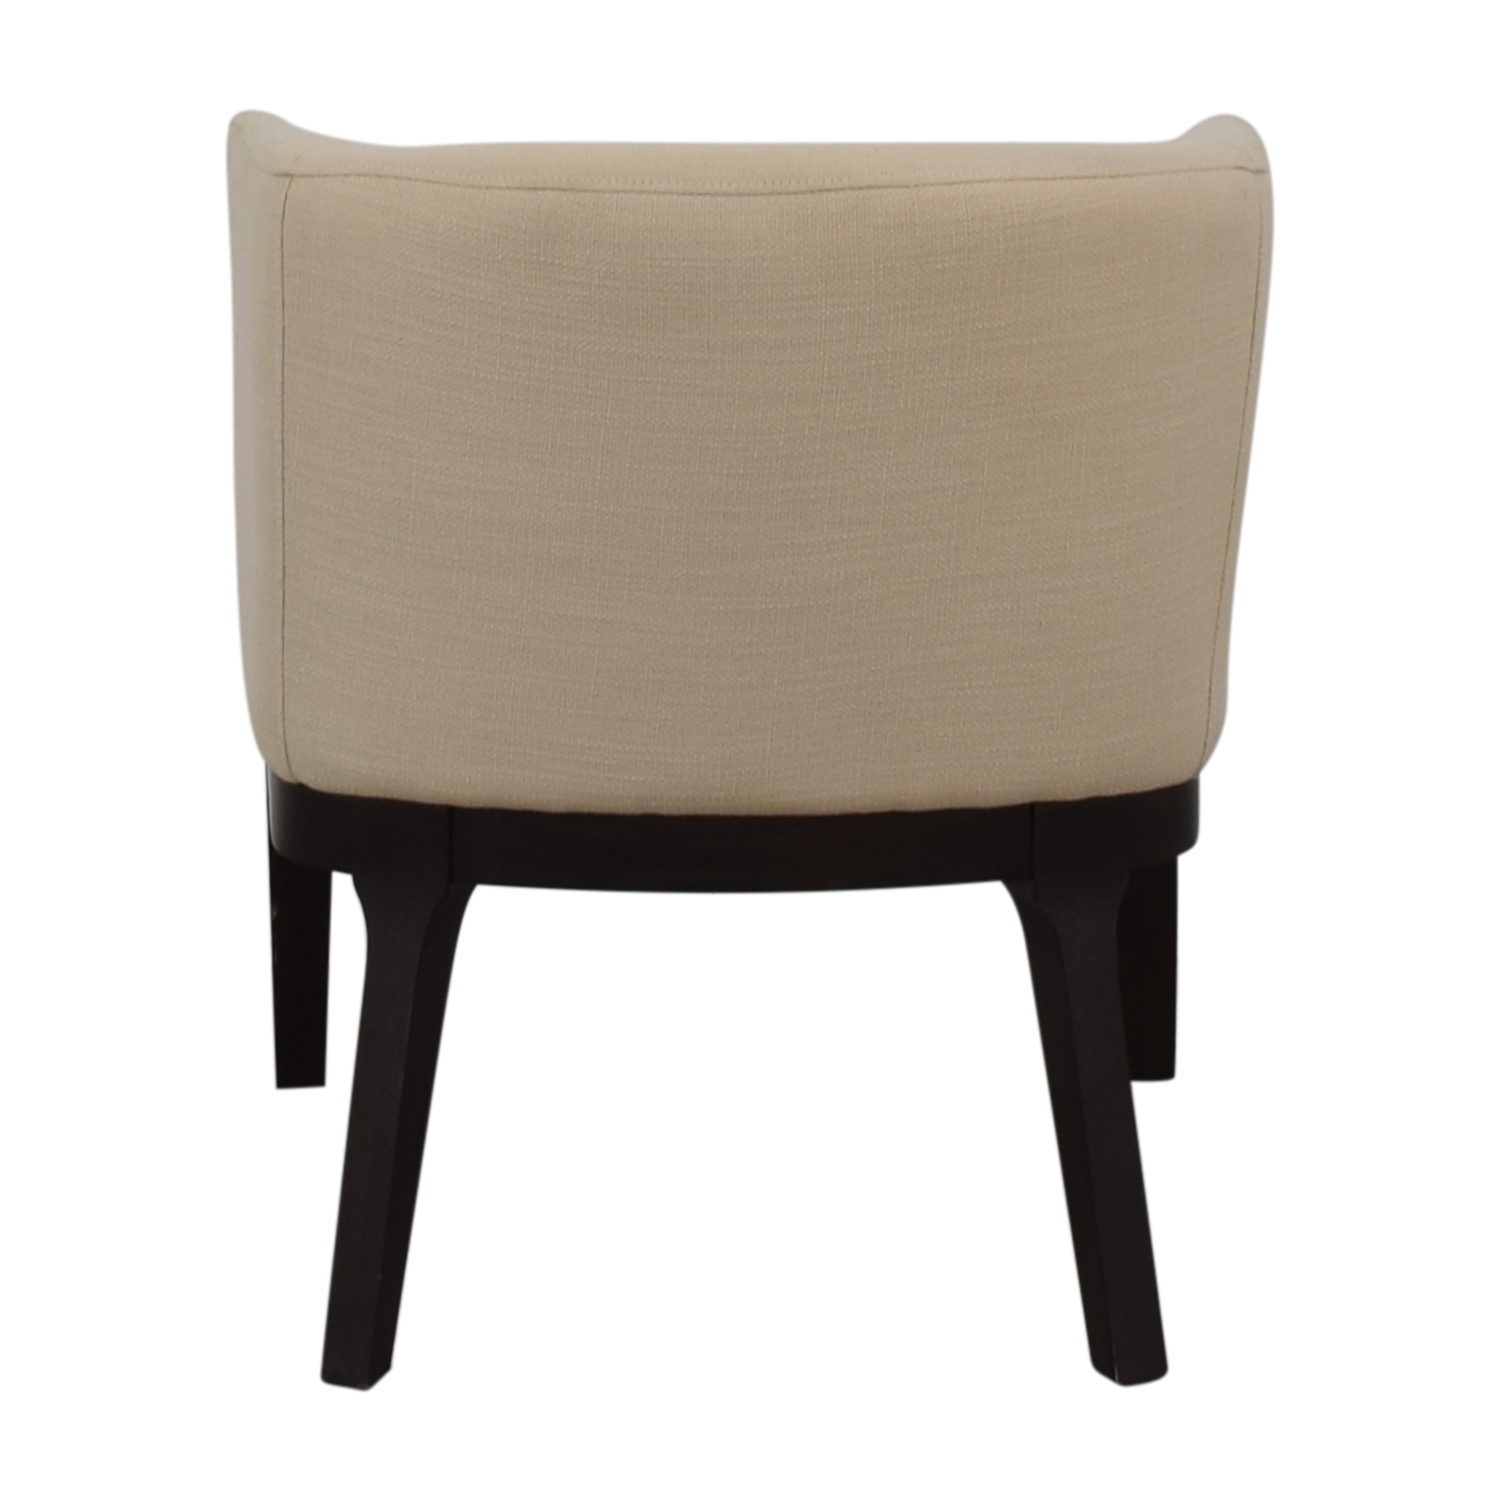 West Elm West Elm Oliver Chair price